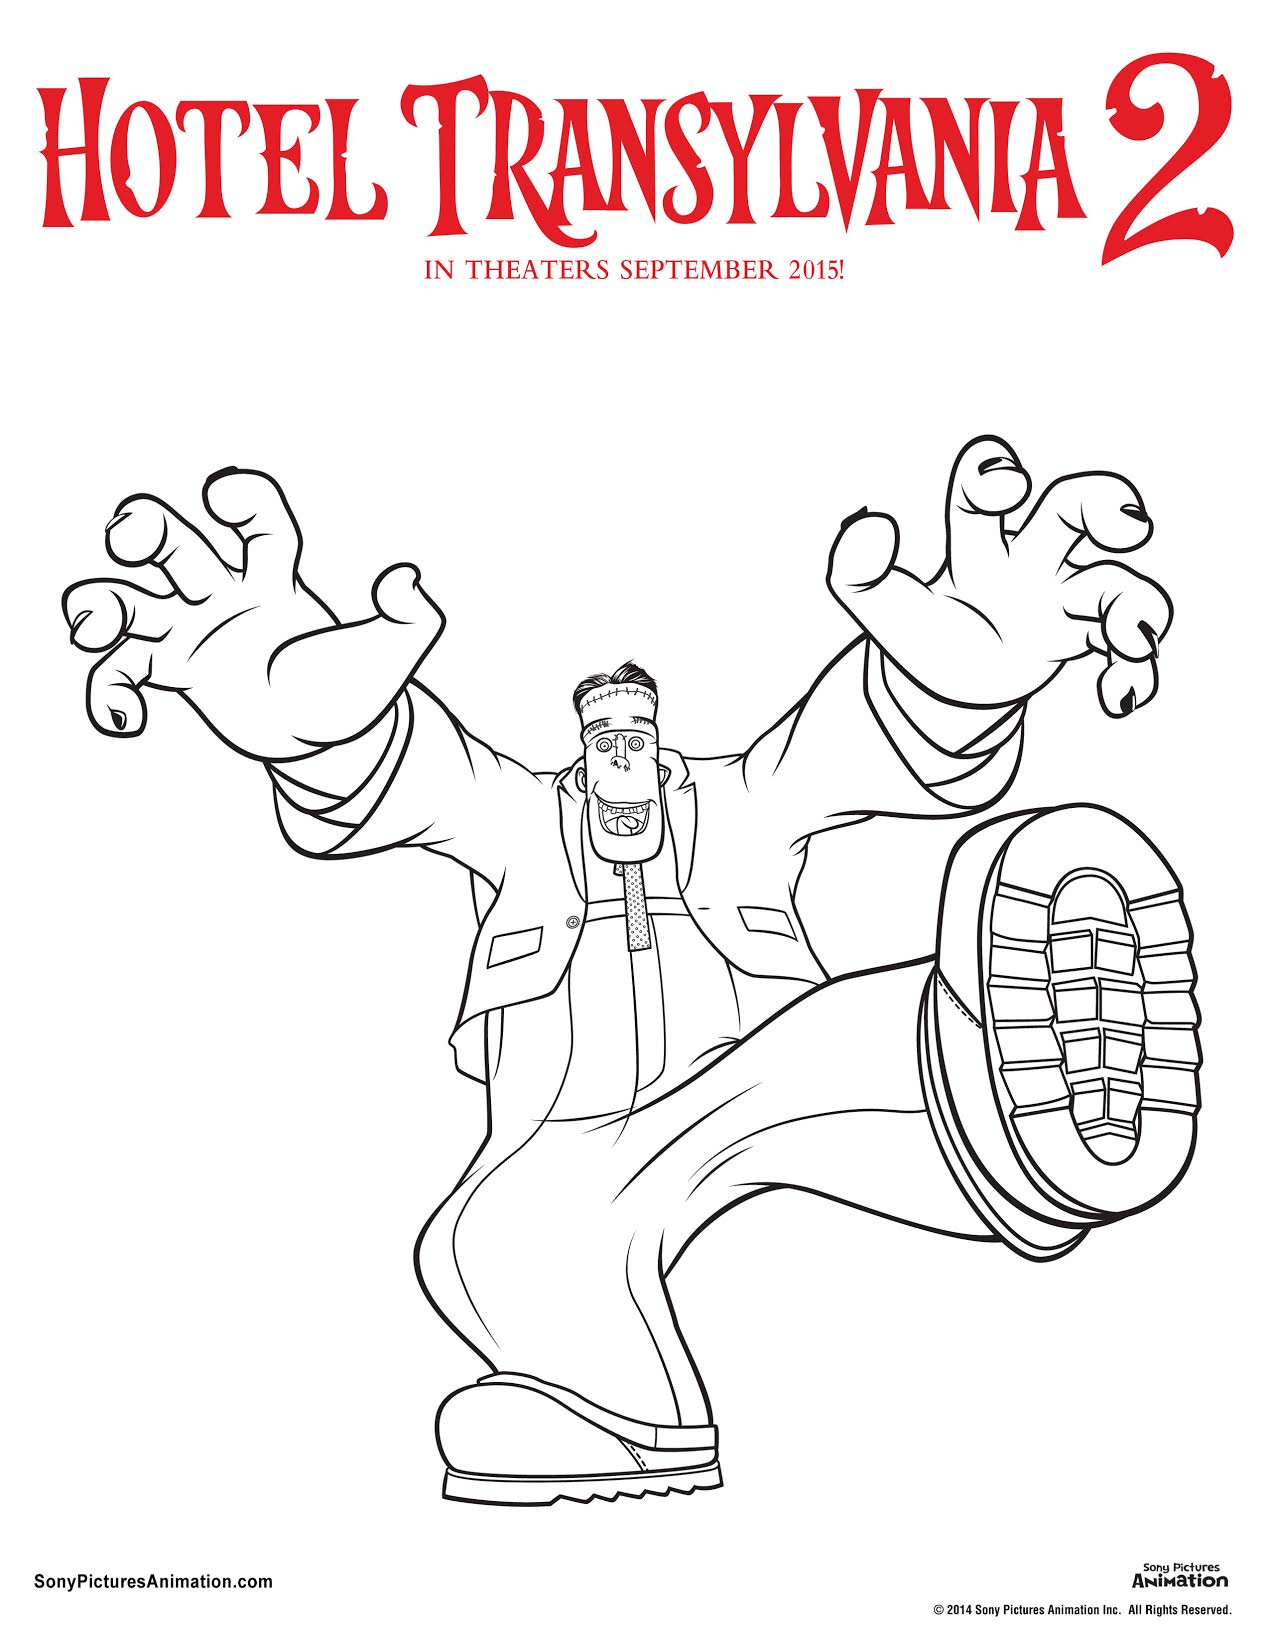 Hotel Transylvania 3 Coloring Pages for Kids, How to Draw Hotel ... | 1644x1270